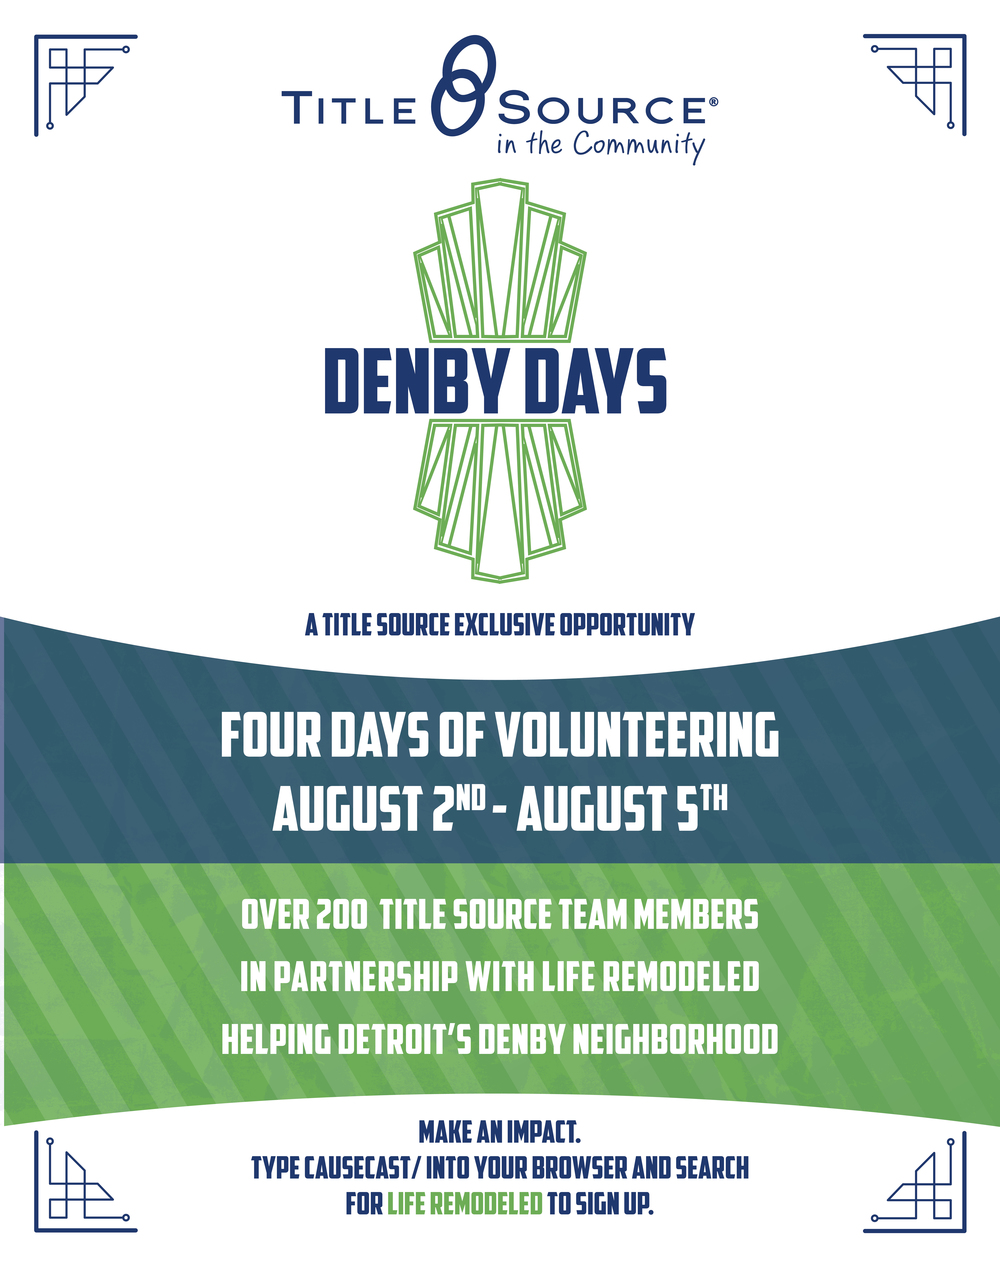 04_0023_Community_Denby_Days_Poster_V2-04.jpg